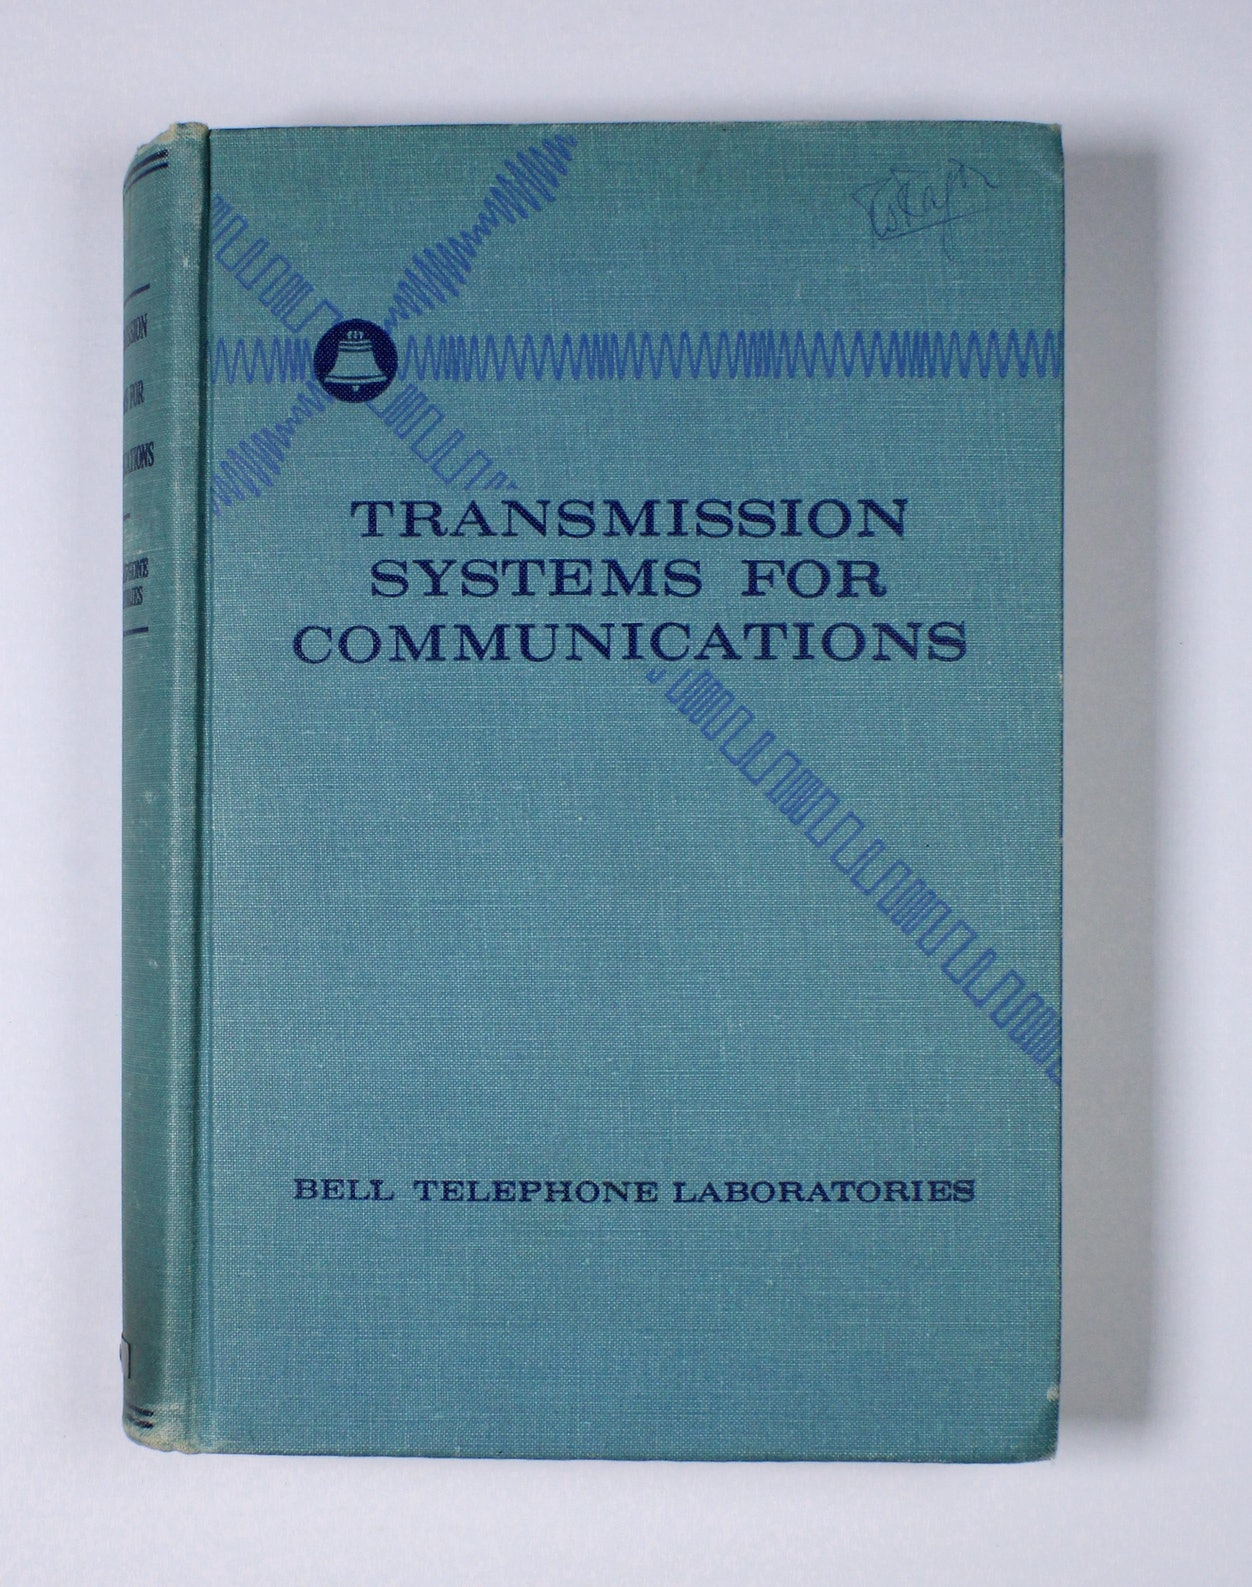 Transmission Systems for Communications